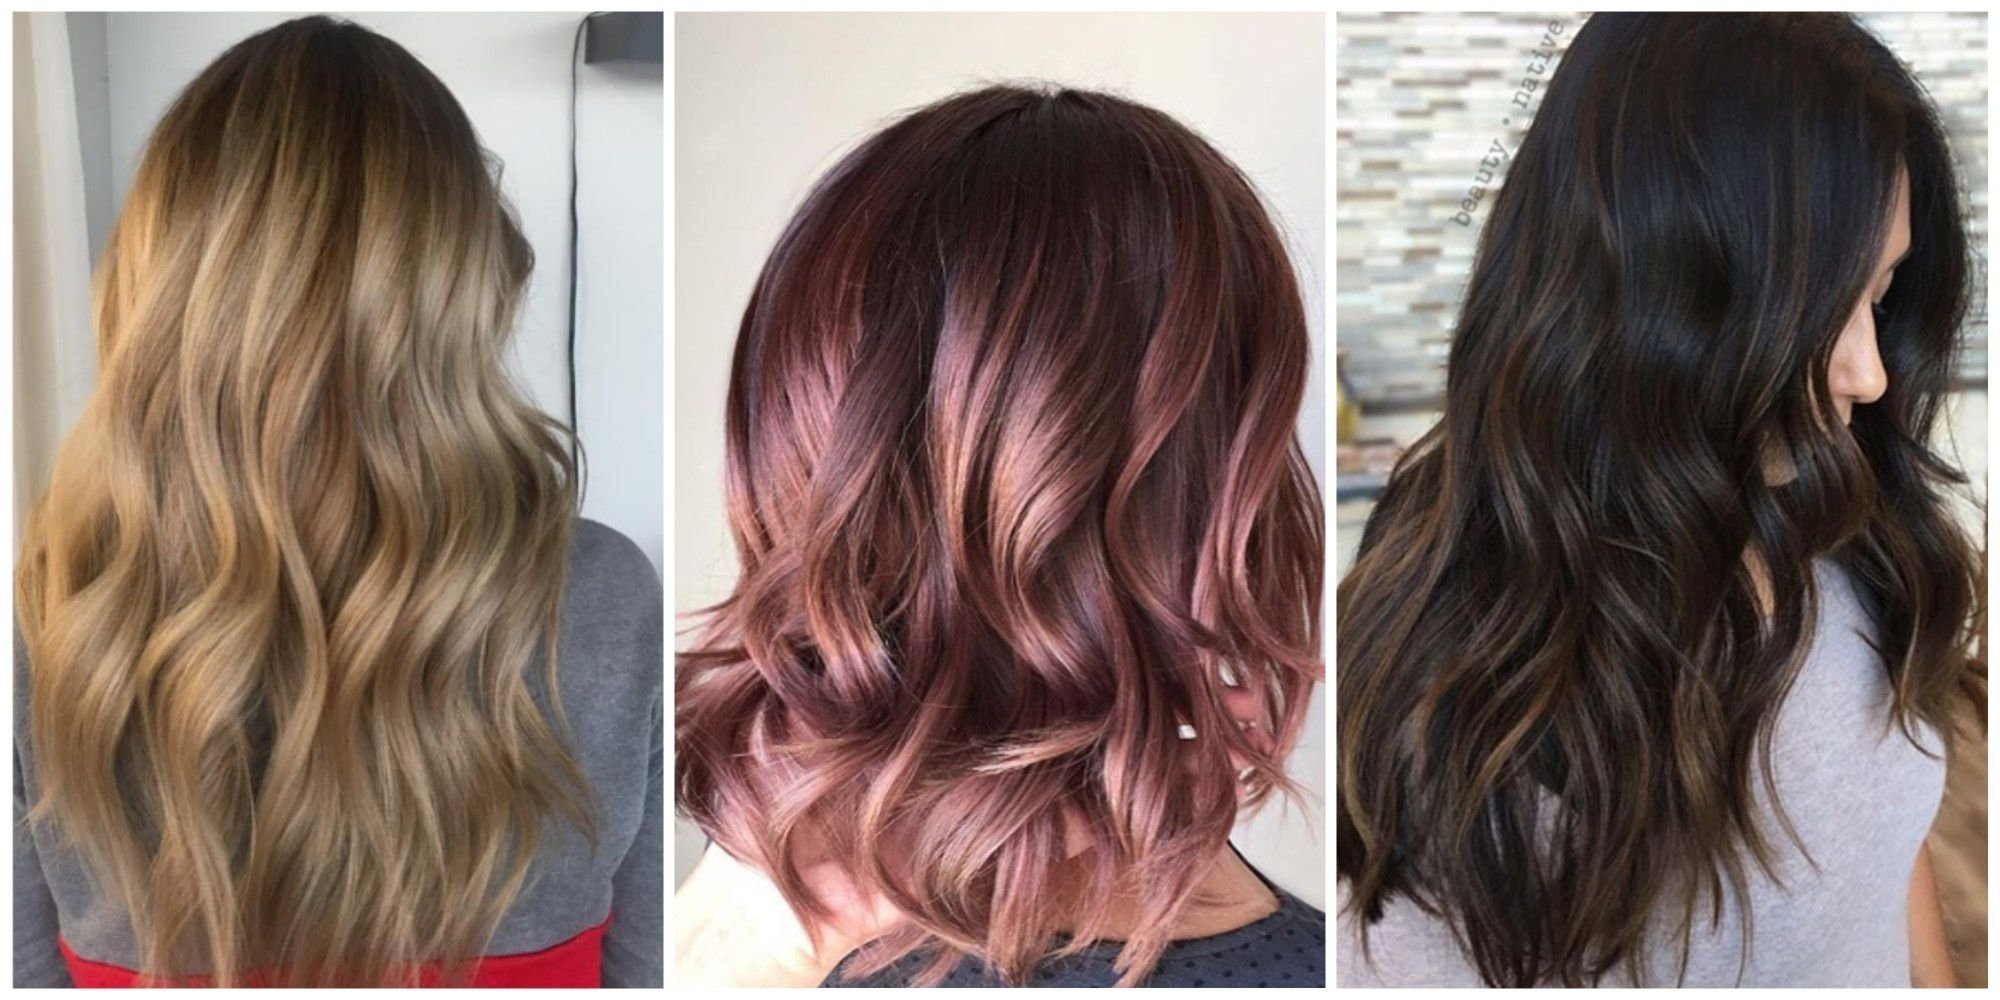 10 Ideal Hair Coloring Ideas For Long Hair 15 hair color ideas and styles for 2018 best hair colors and products 2020